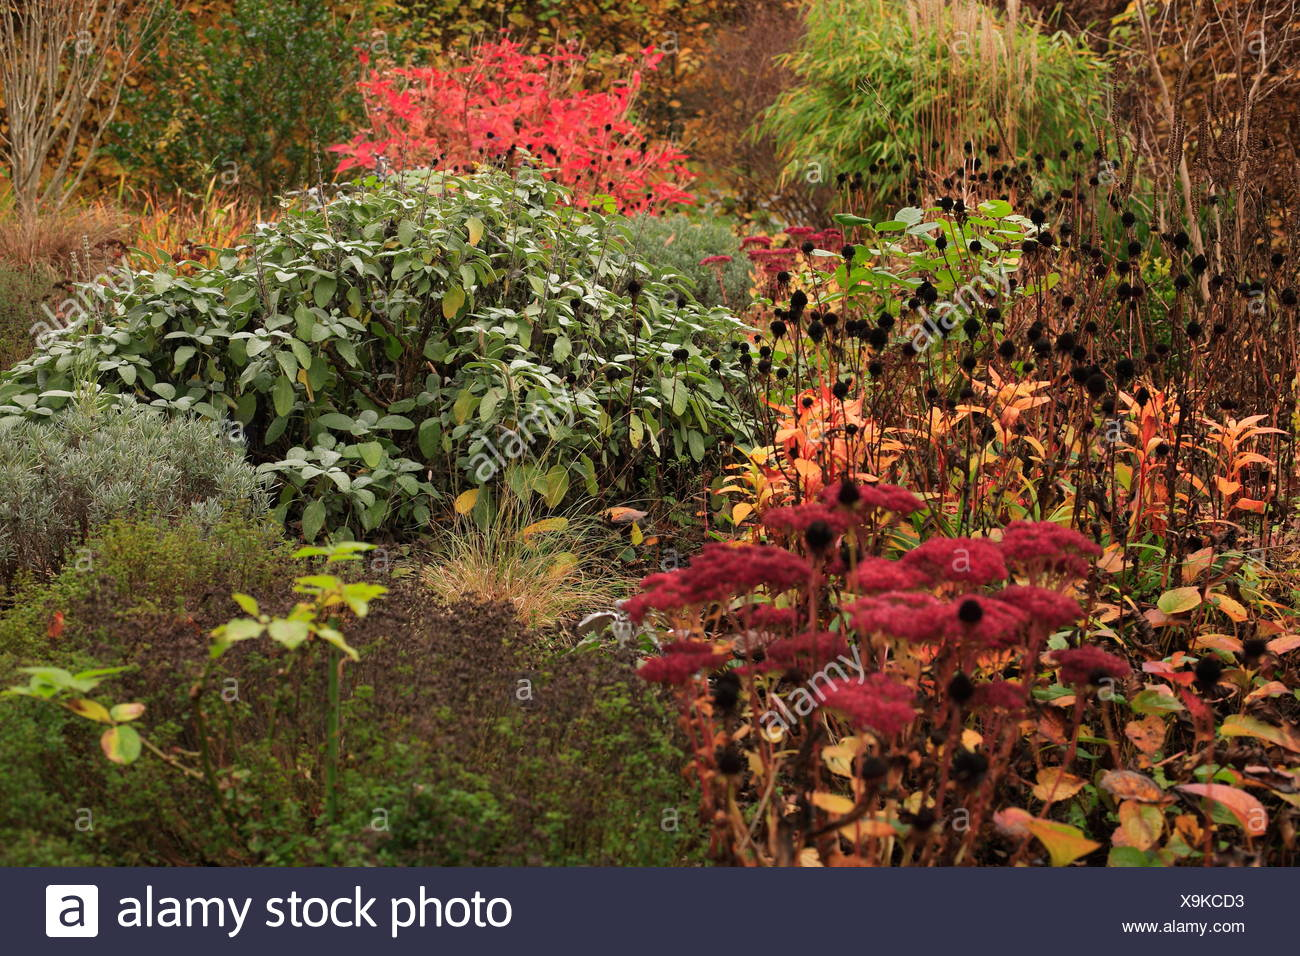 Autumn atmosphere - Stock Image